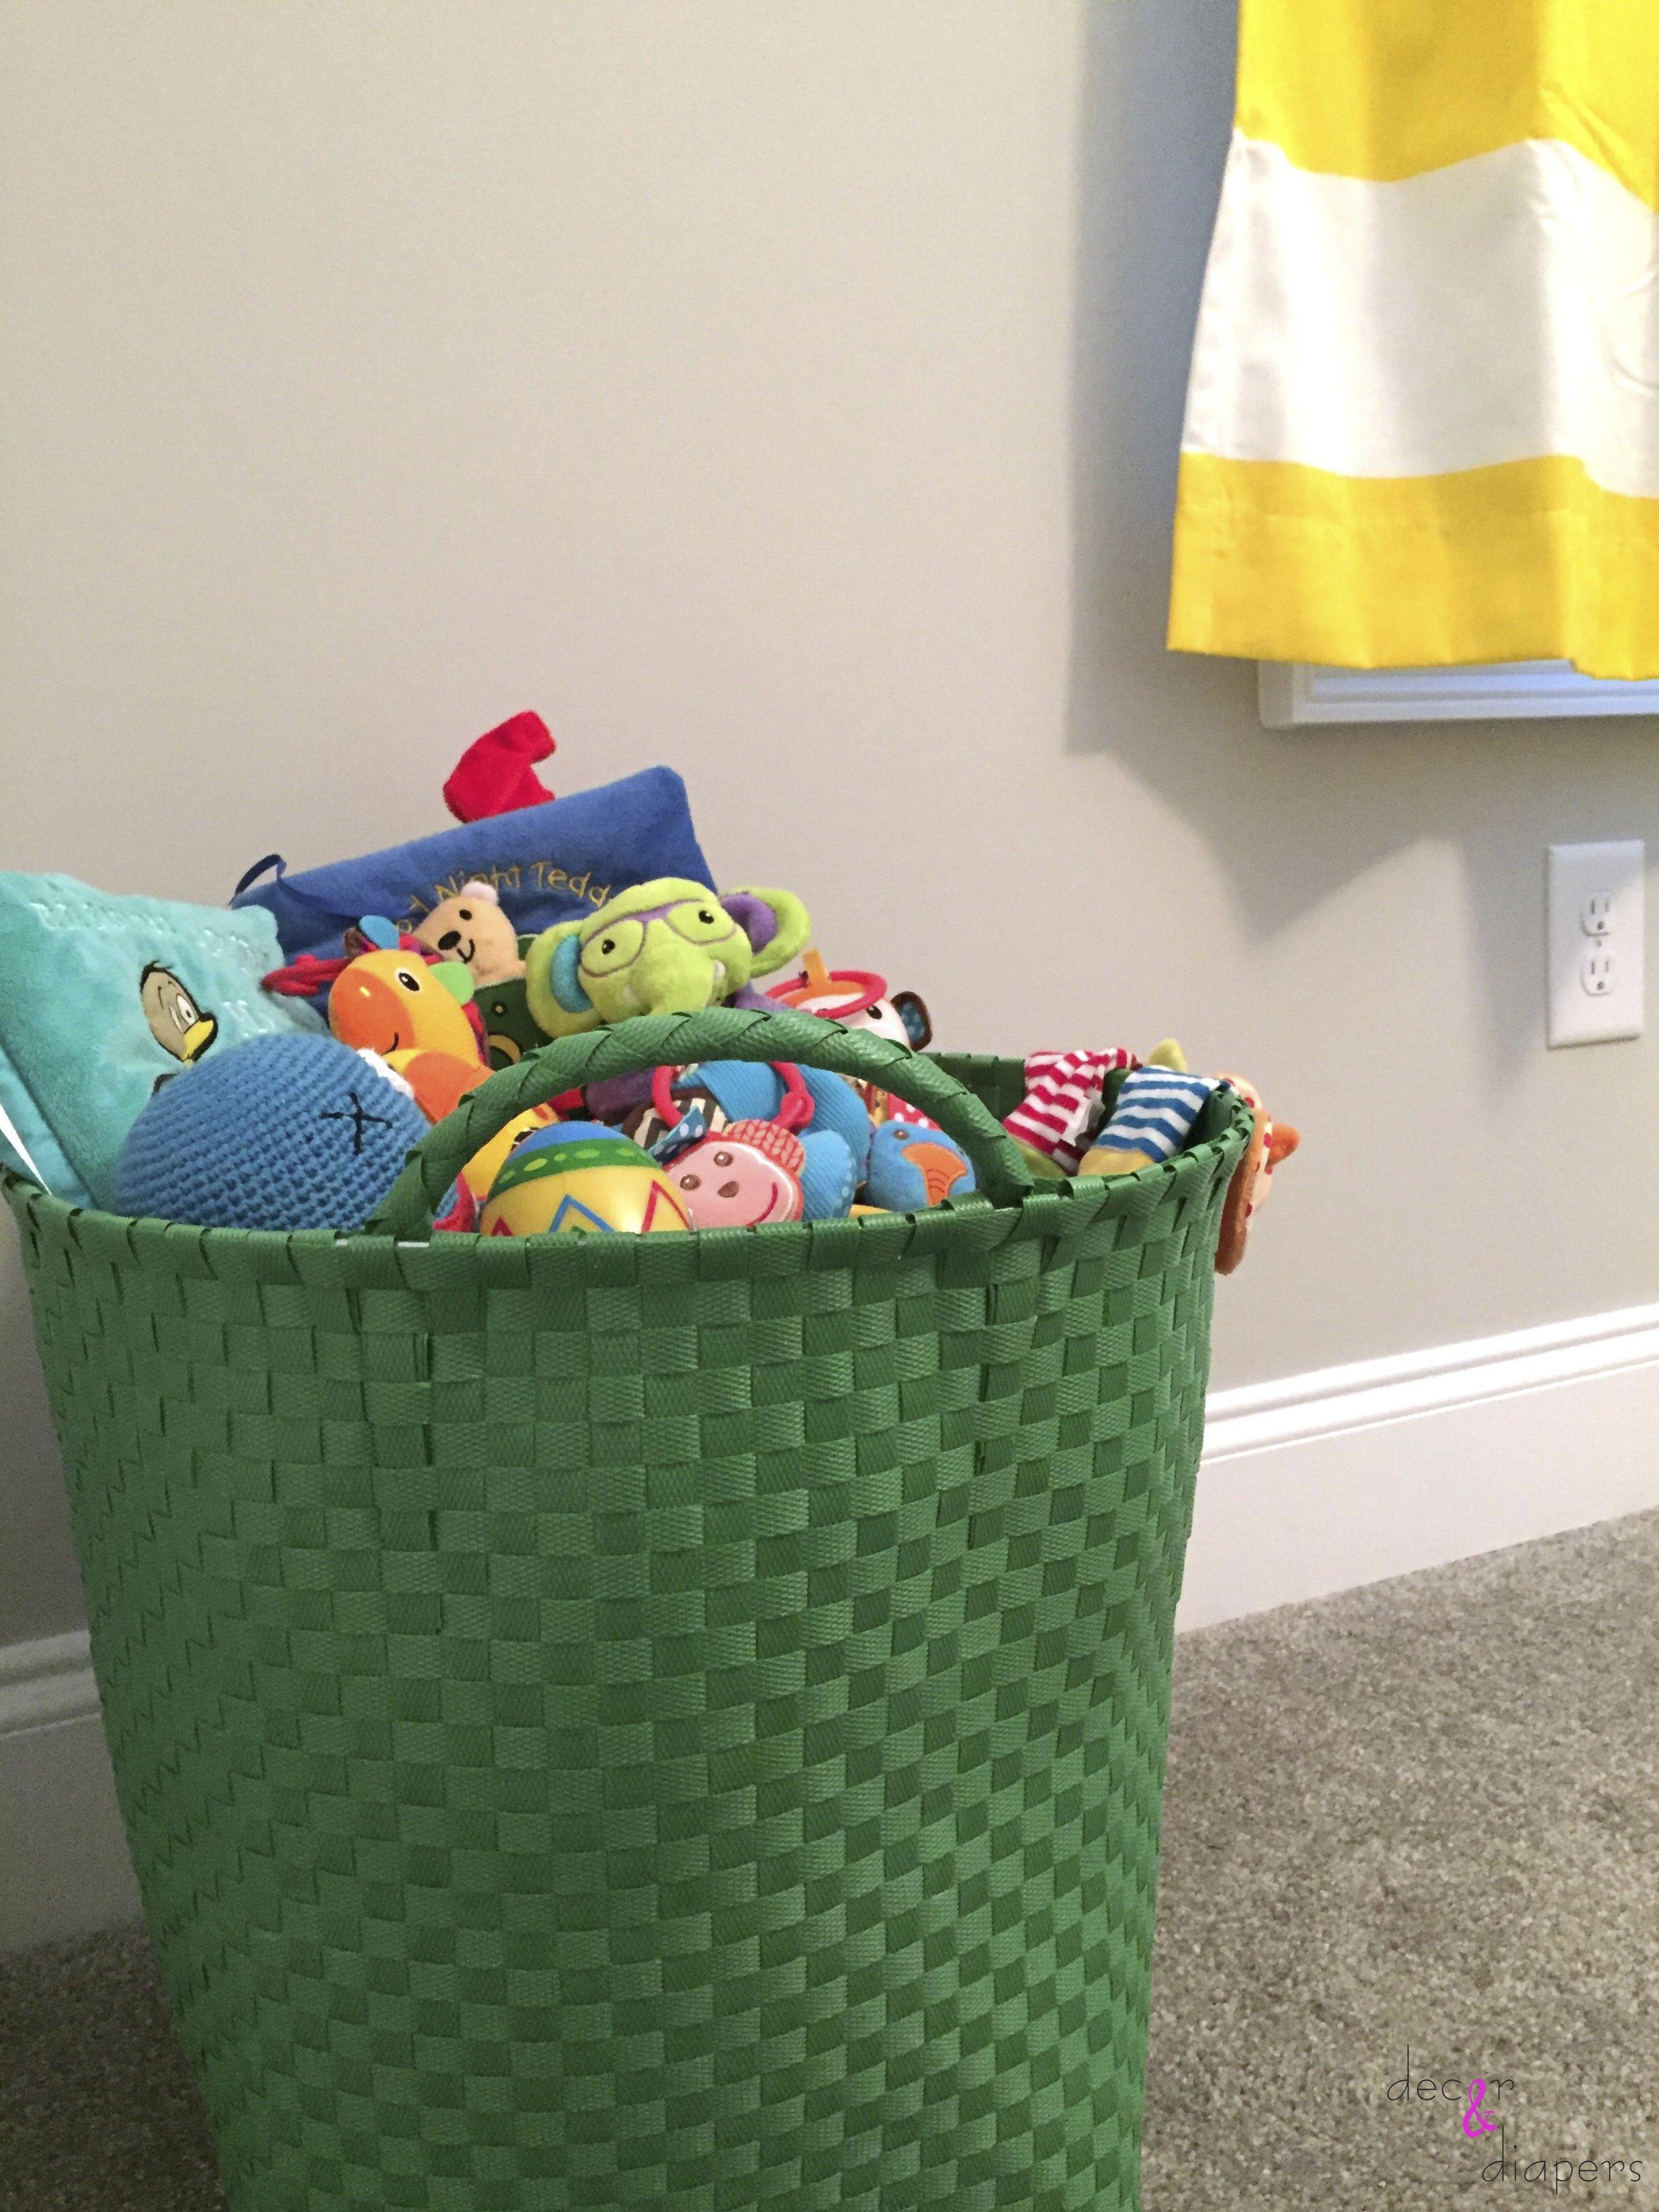 Baby will have easy access to all of his toys at floor level